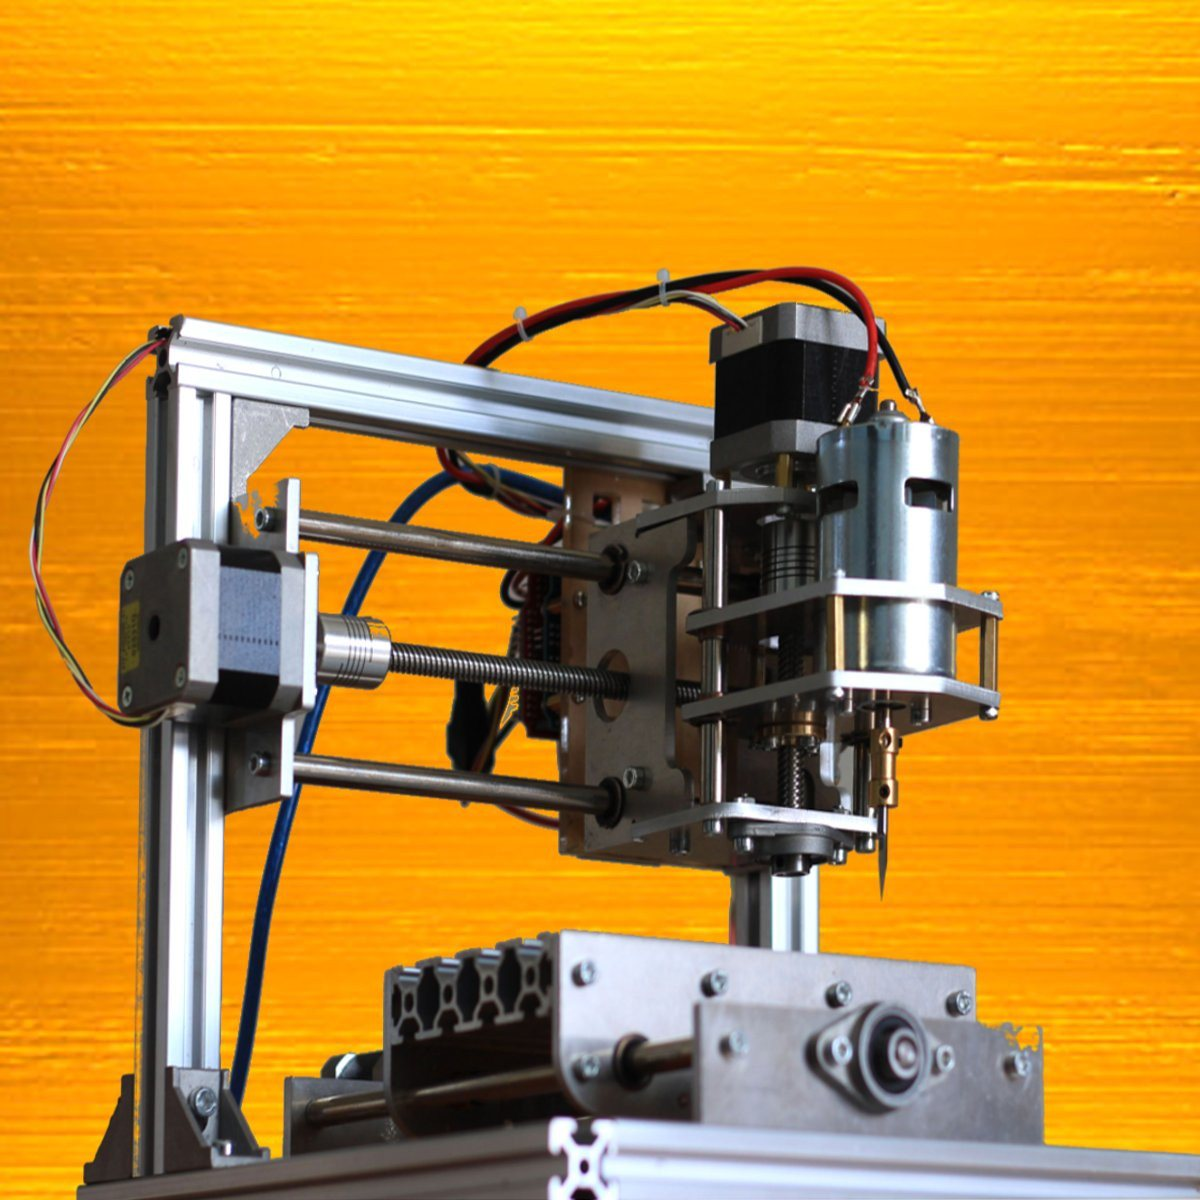 Mini 24V 5A DIY 3 Axis CNC Engraver Engraving Machine 130x100x40mm PCB Milling Wood Carving Engraving Router Kit for Grbl Board